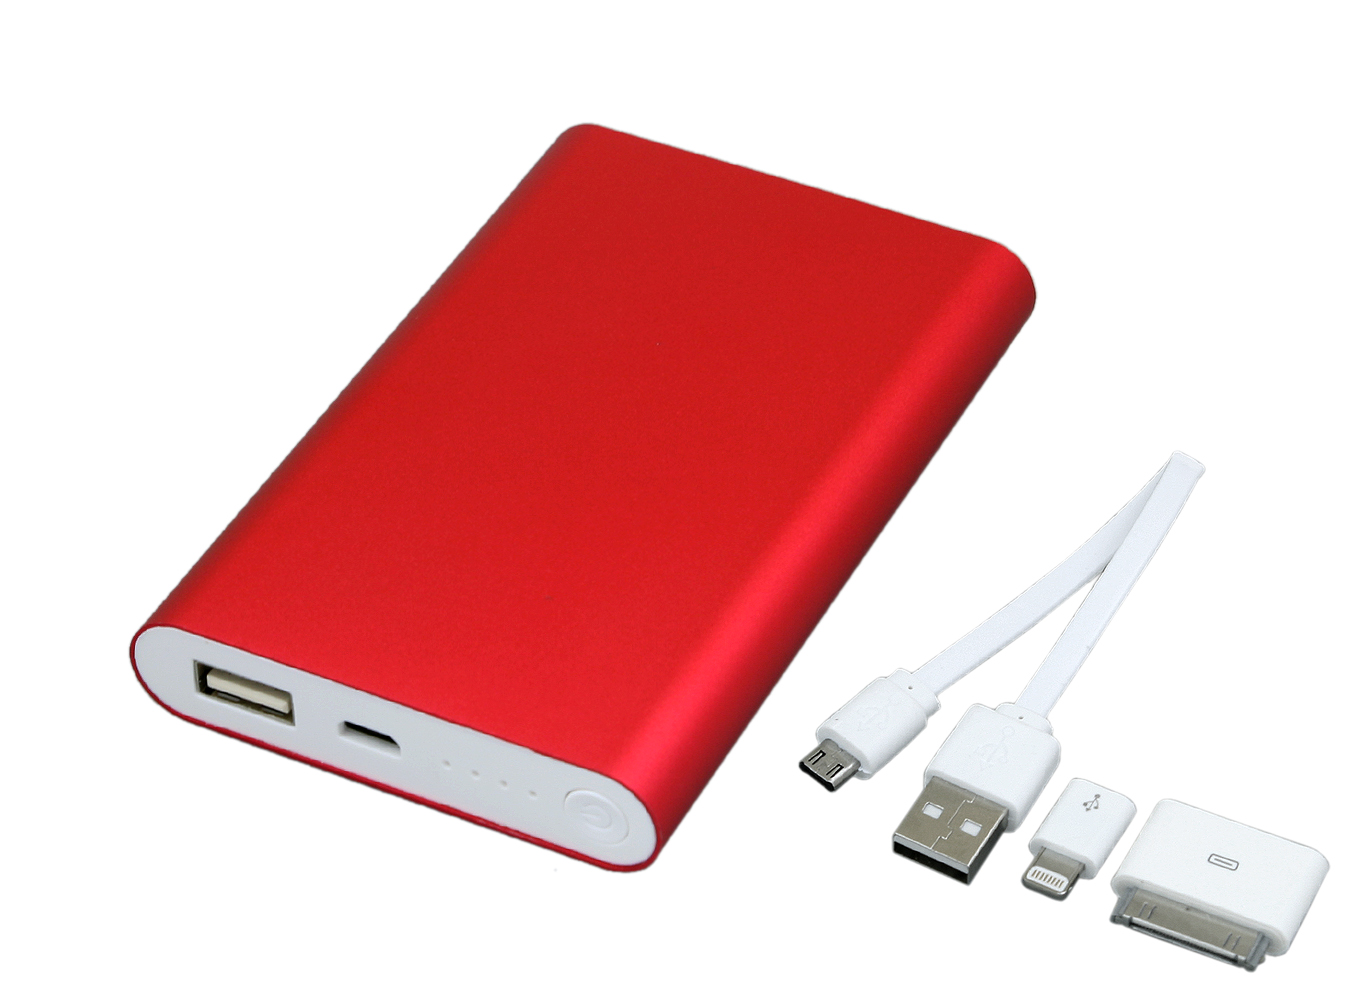 Зарядку Power Bank 8000 mAh красного цвета PB002 купить